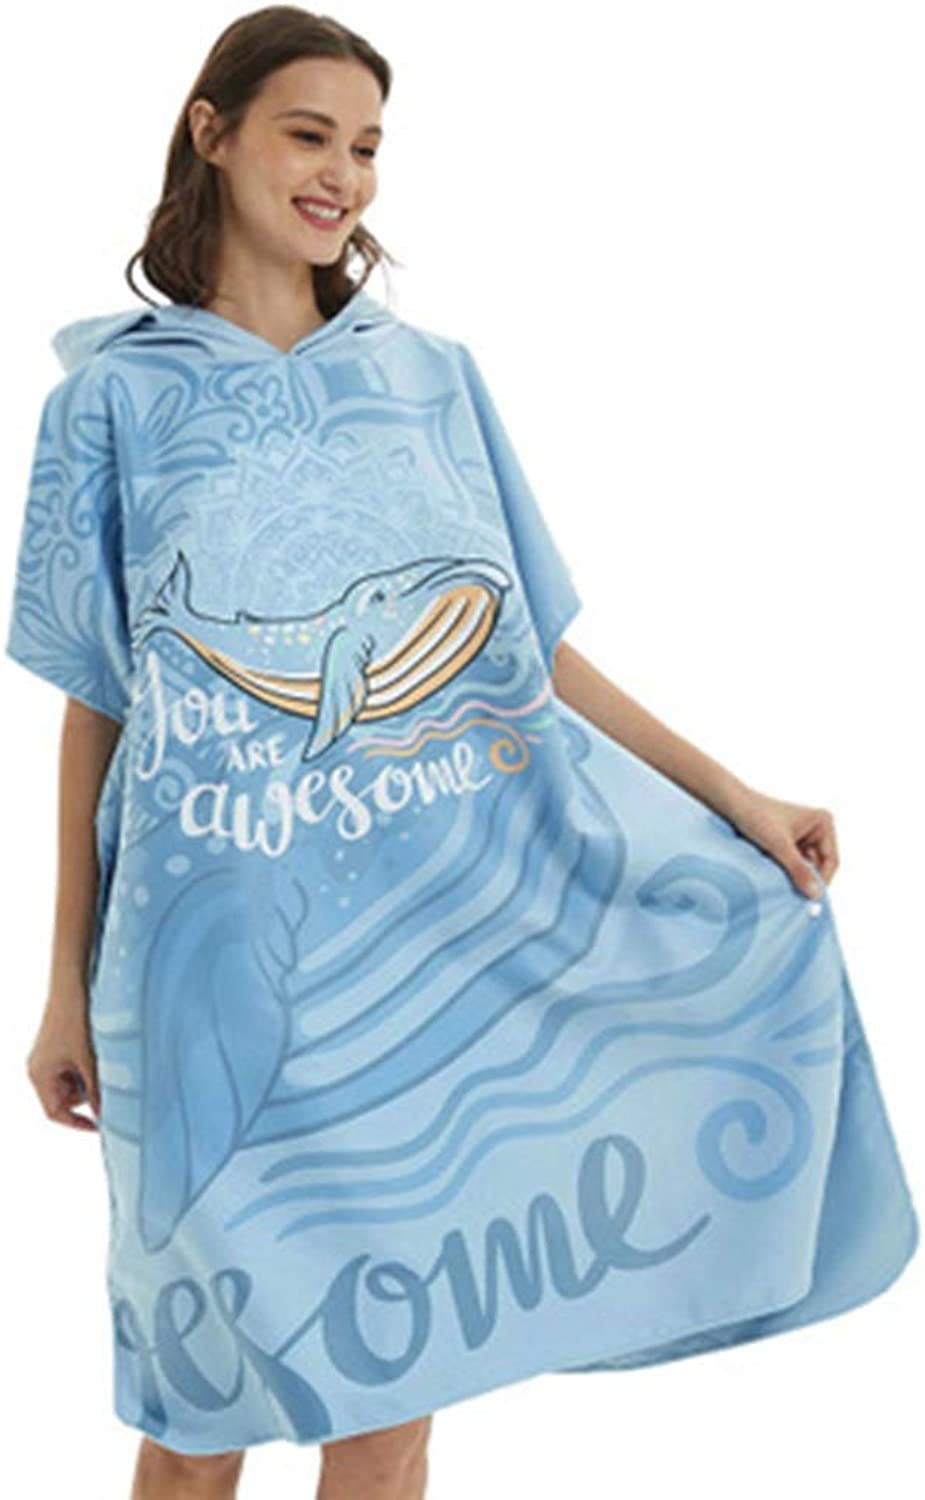 Changing Bath Robe with Hood Bath Towel Bathrobe Microfiber Towel Can Be Worn Quickly Dry Water Swimming Diving Beach Free bluee Whale for Beach Surf Swim Triathlon (color   bluee, Size   One Size)